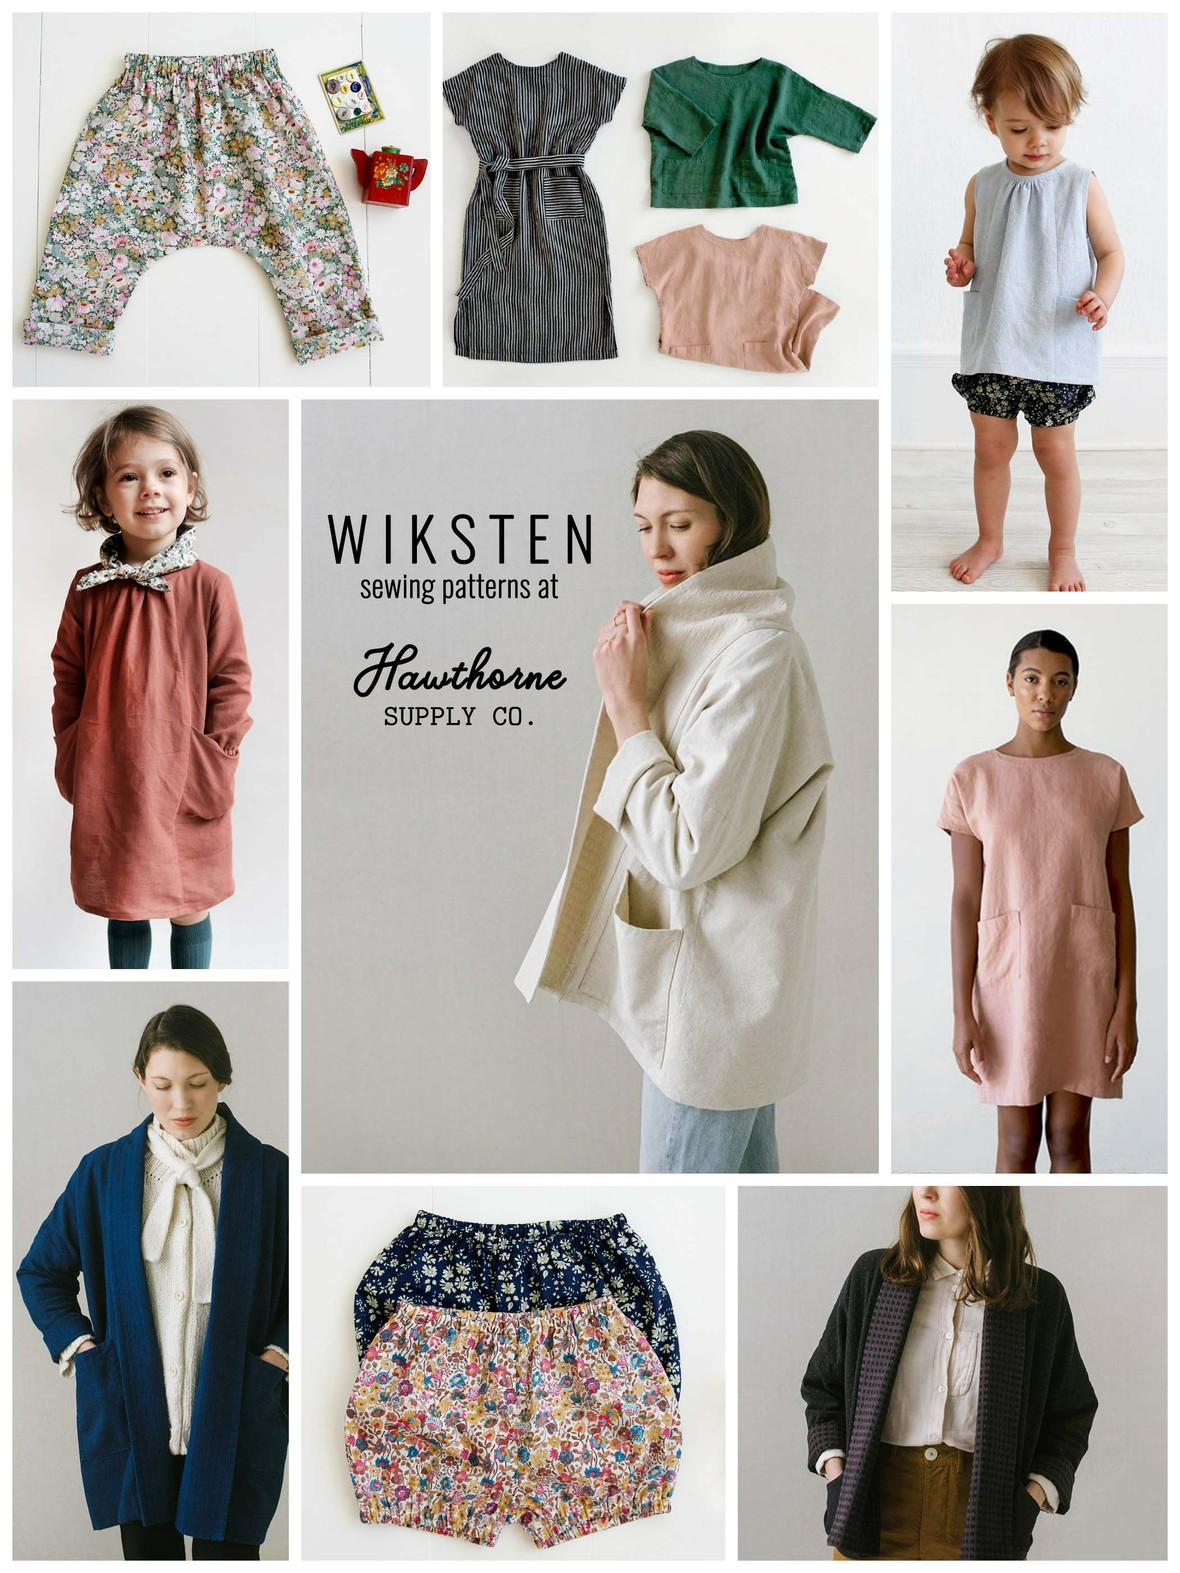 Wiksten Sewing Patterns at Hawthorne Supply Co